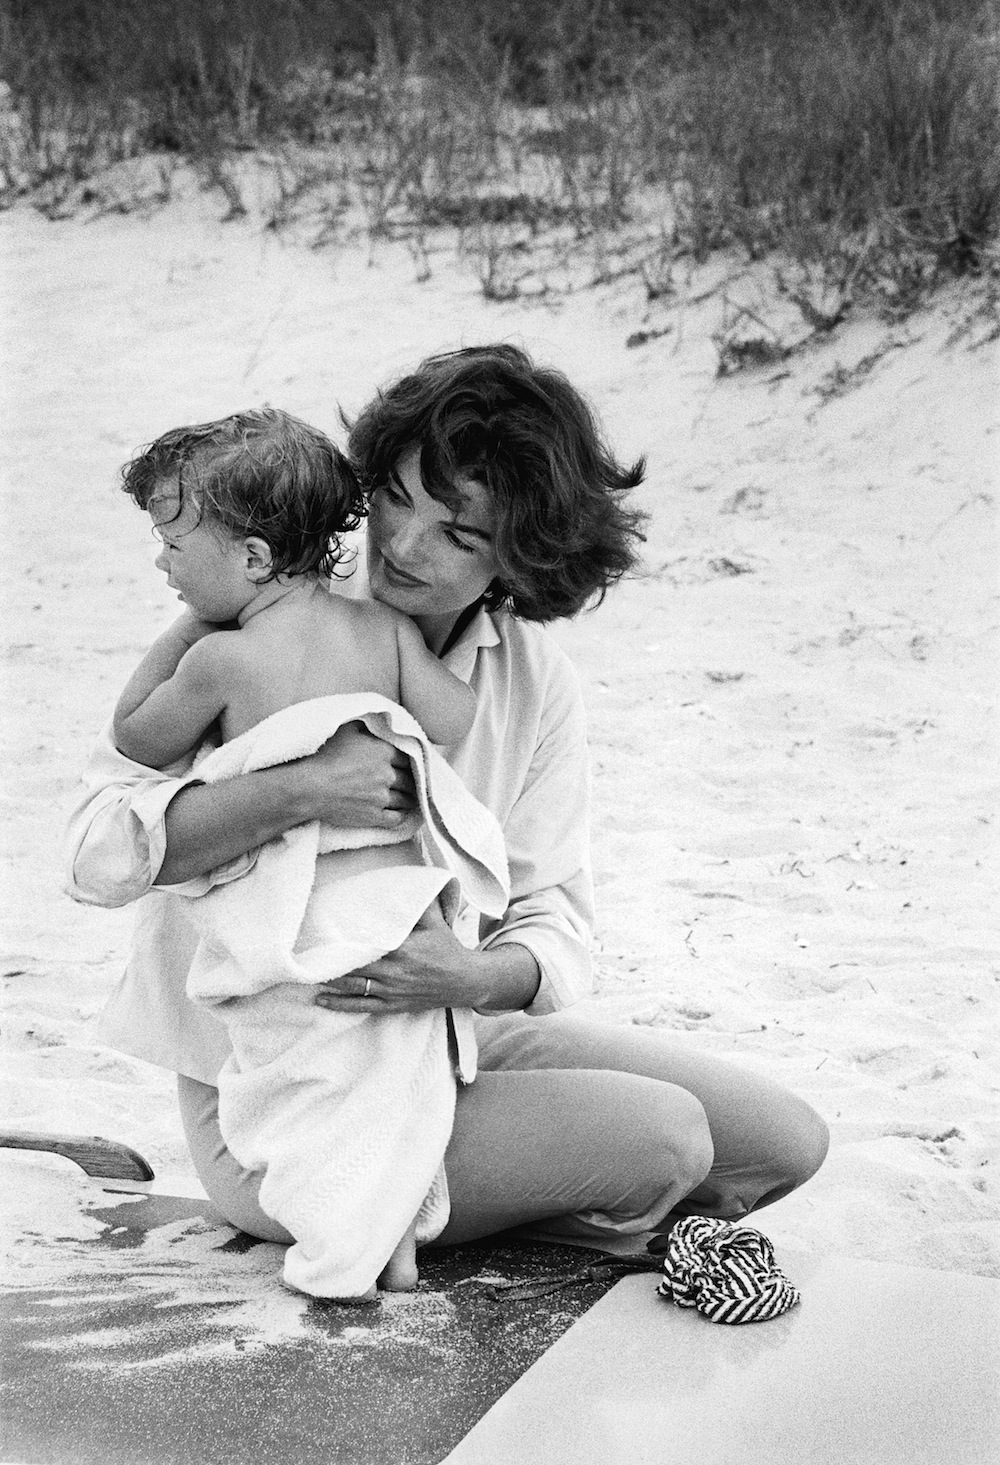 Jacqueline Kennedy and Caroline by Mark Shaw, 1959